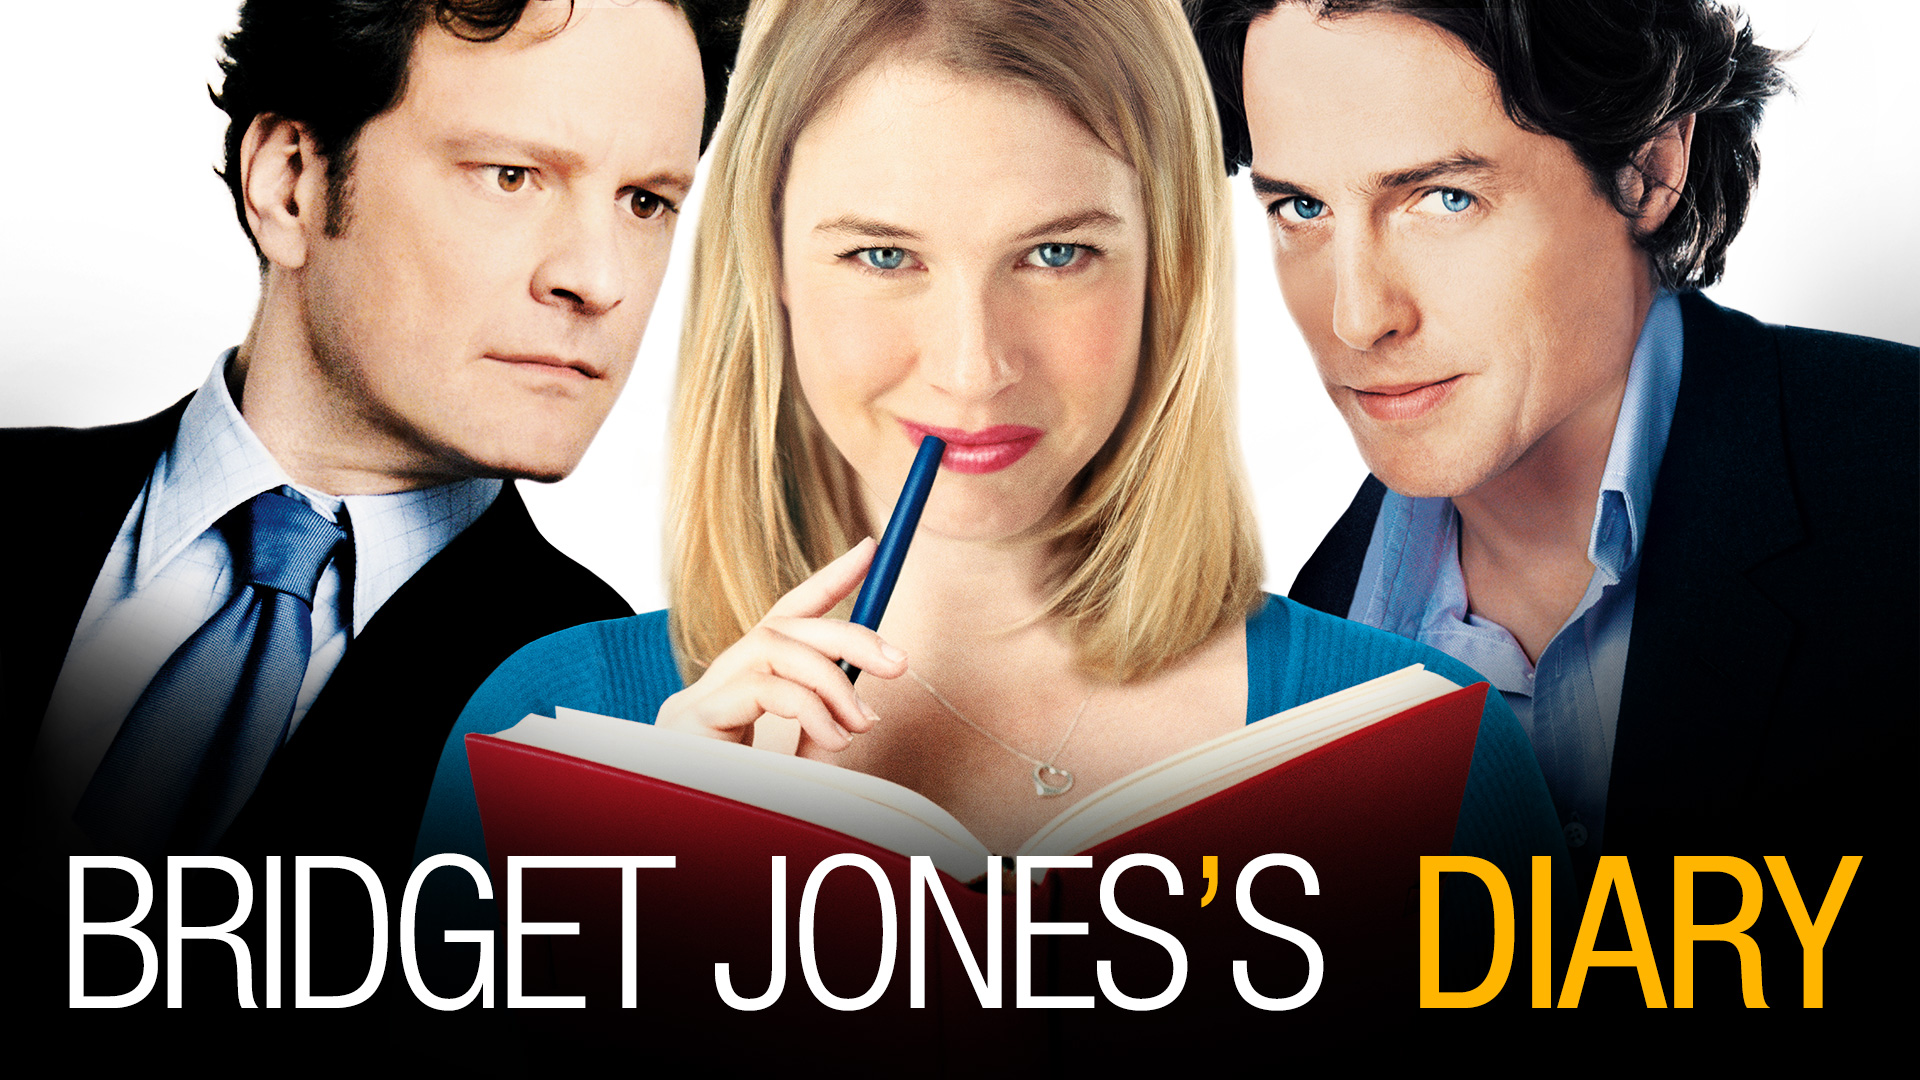 - Bridget Jones's Diary - Official Trailer (HD)